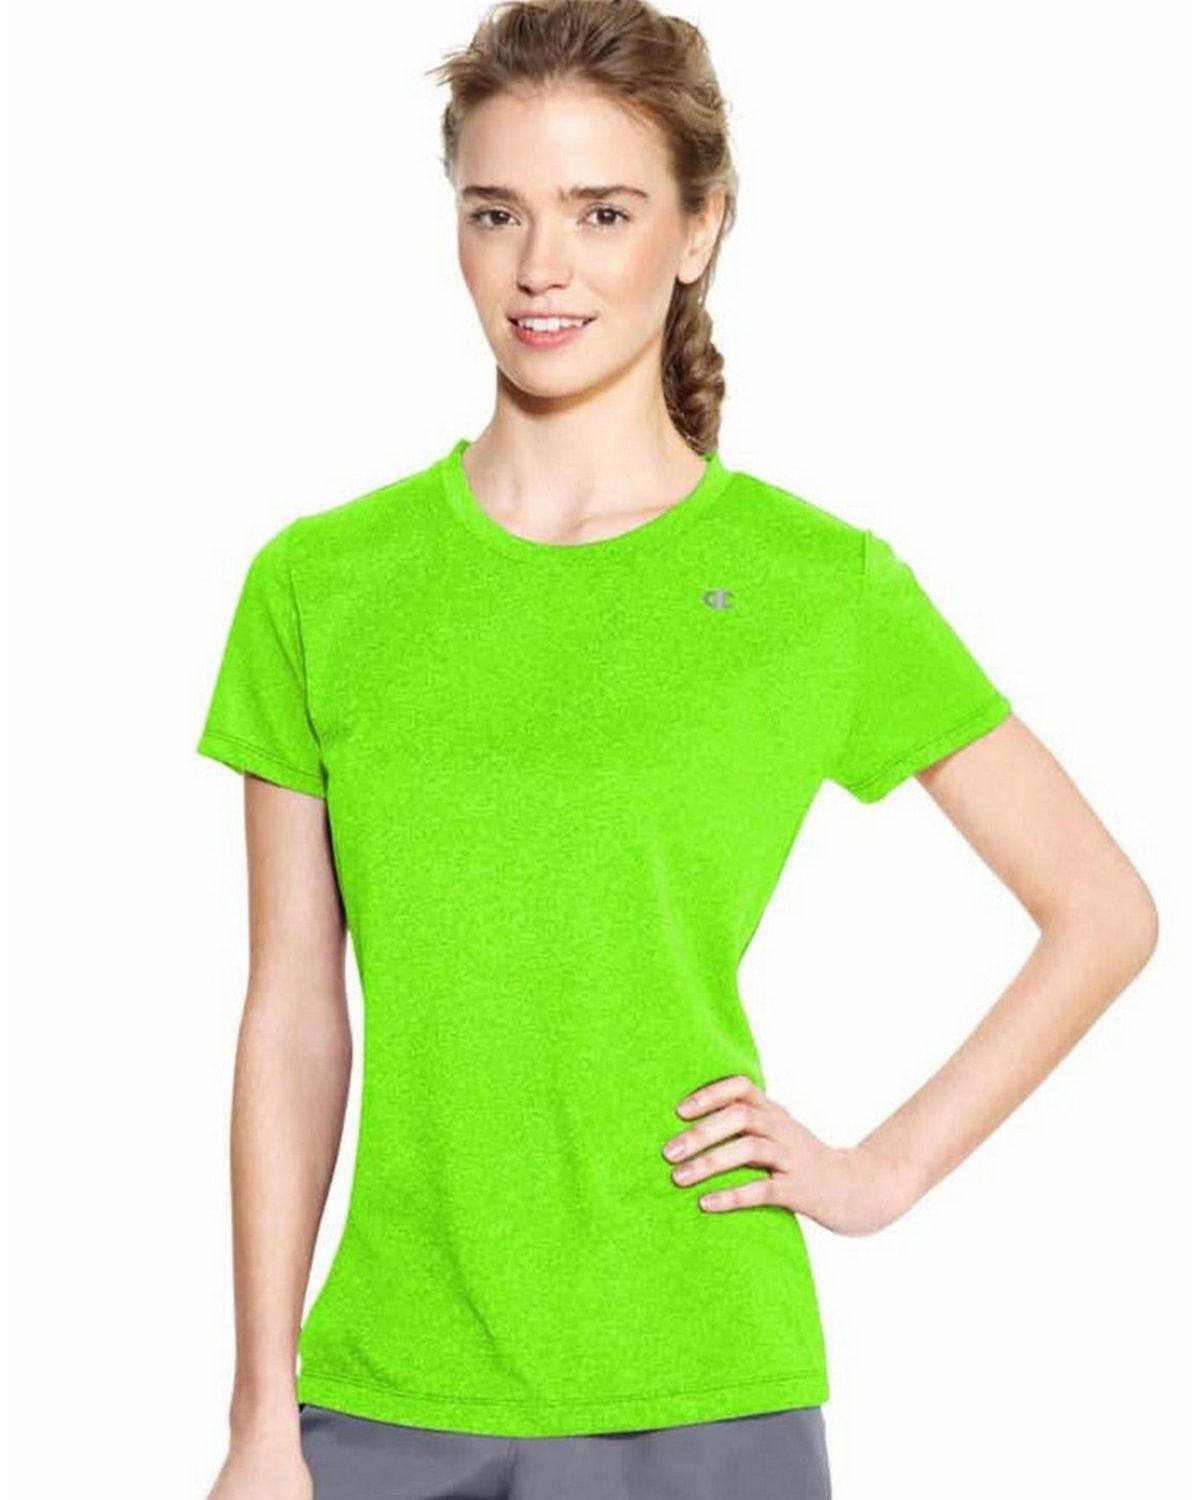 Champion 7963 Vapor PowerTrain Short Sleeve Heather Tee - Forging Green Heather - L 7963